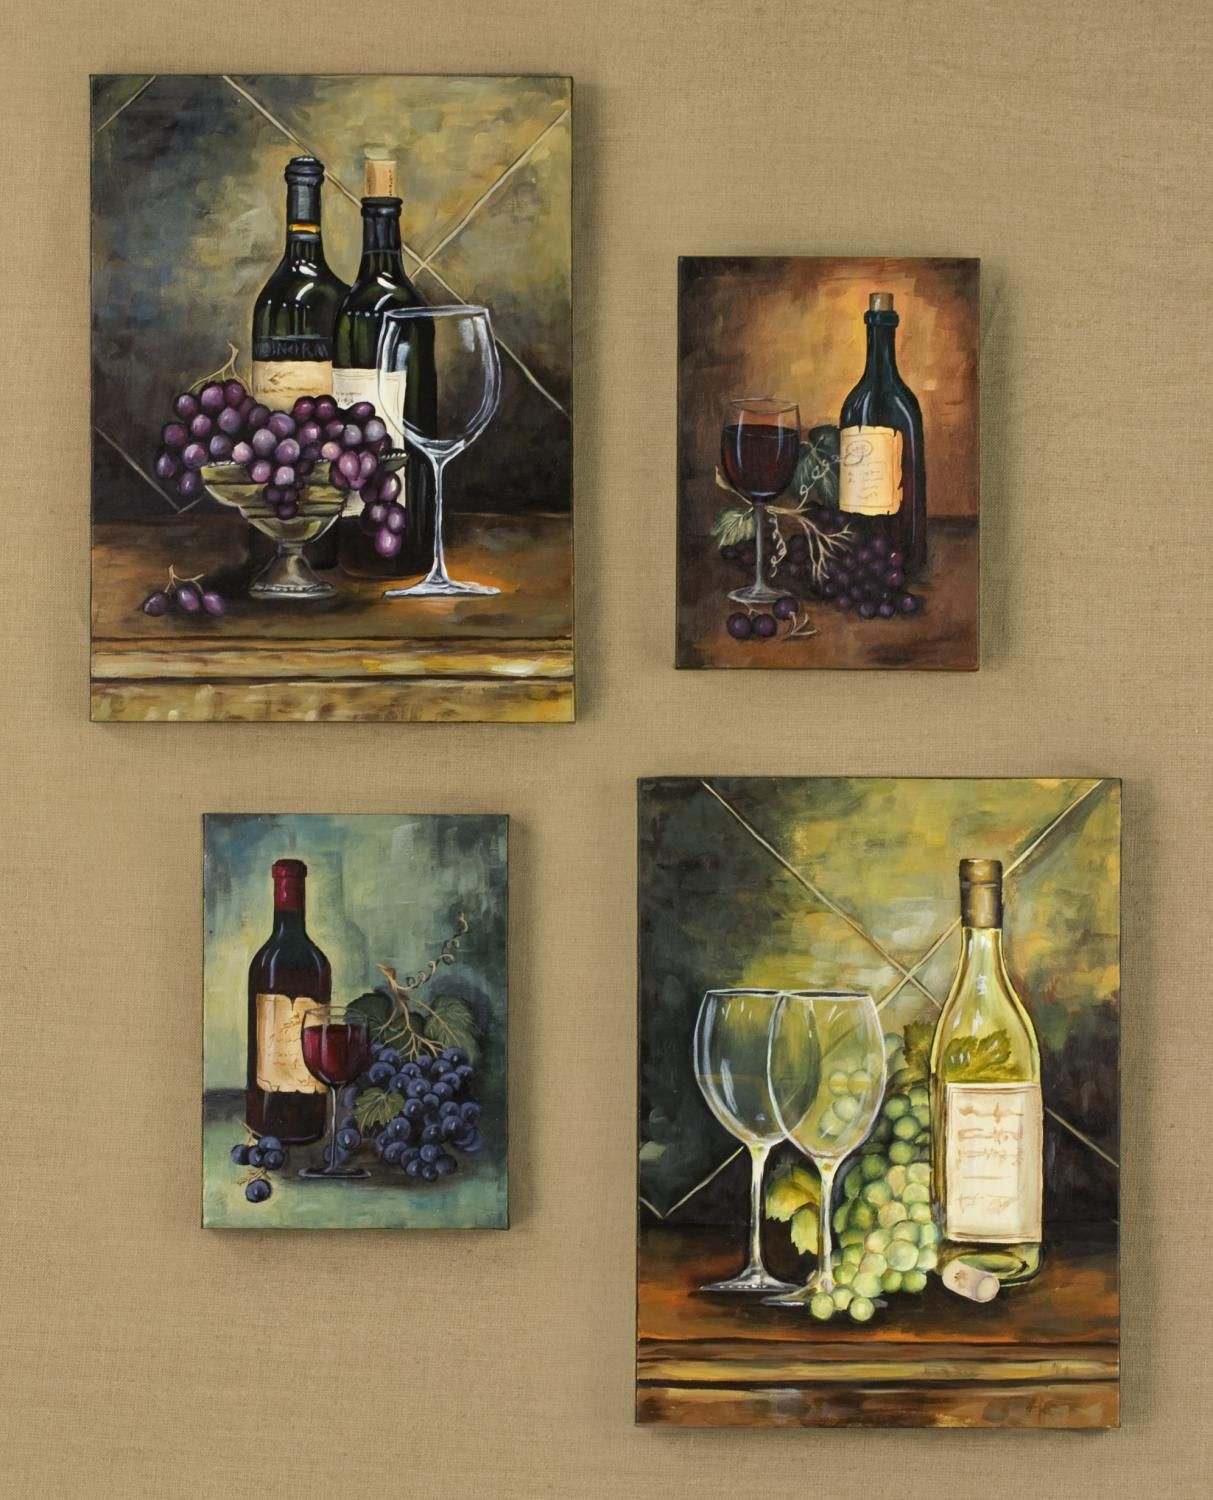 How To Decorate A Wine Bottle Hand Painted Wall Art Decorative